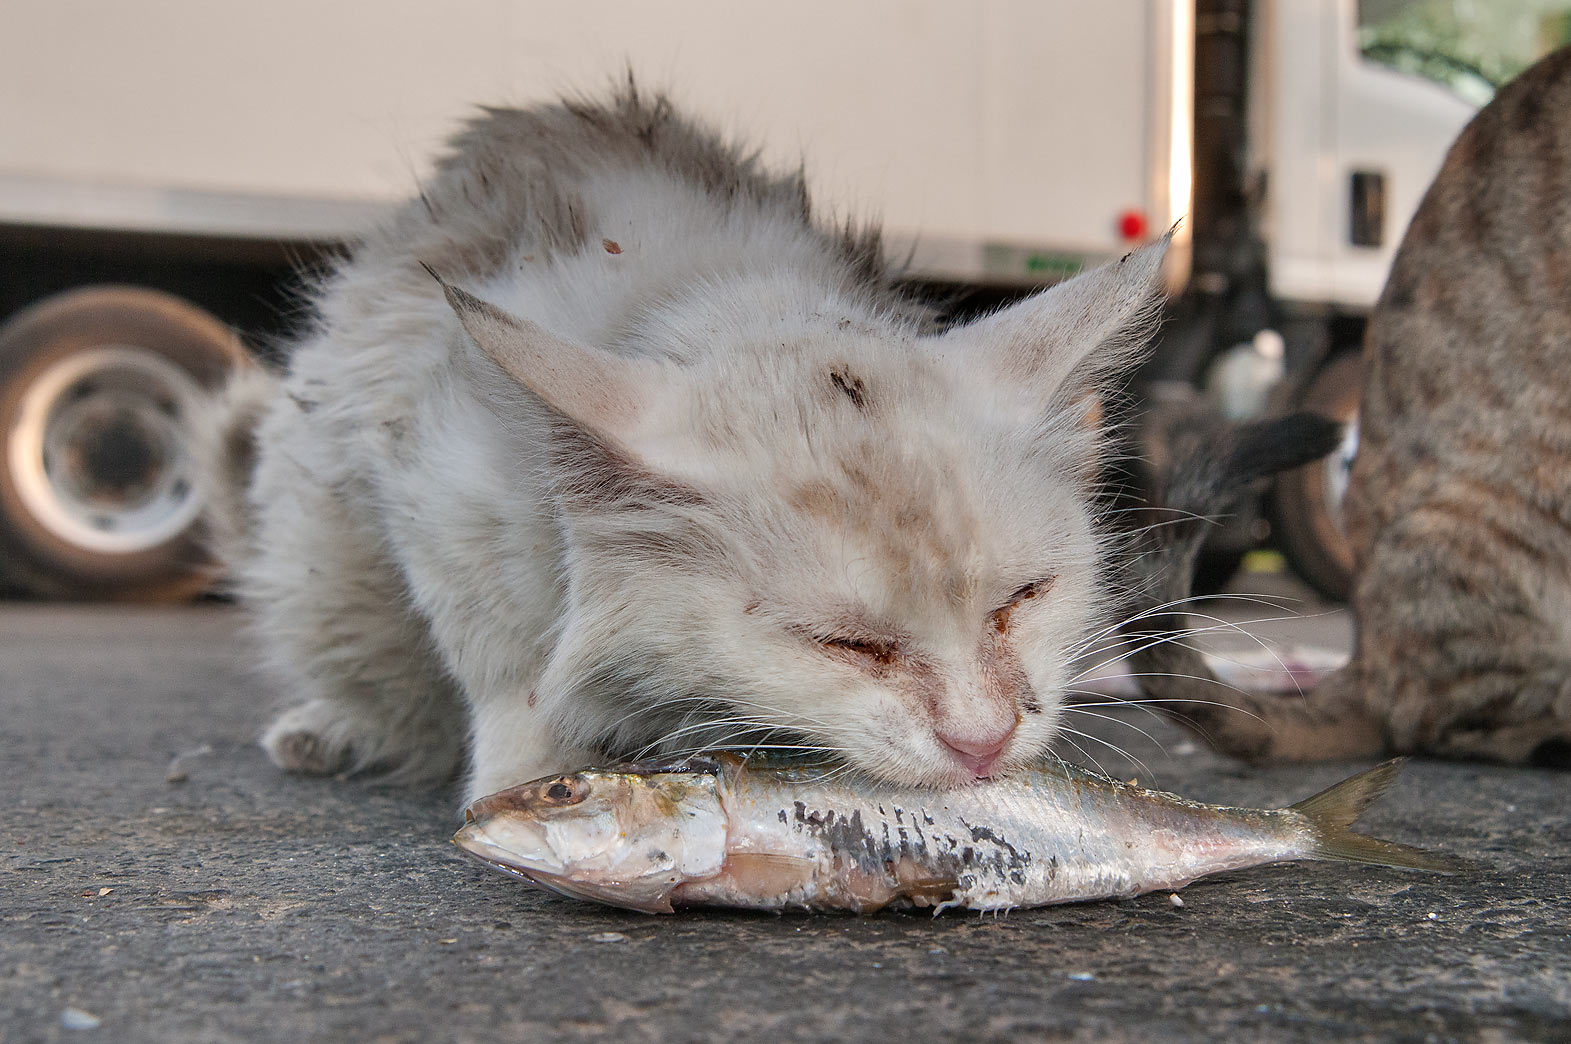 Photo 1220 20 white cat eating a fish near wholesale fish for Fish video for cats